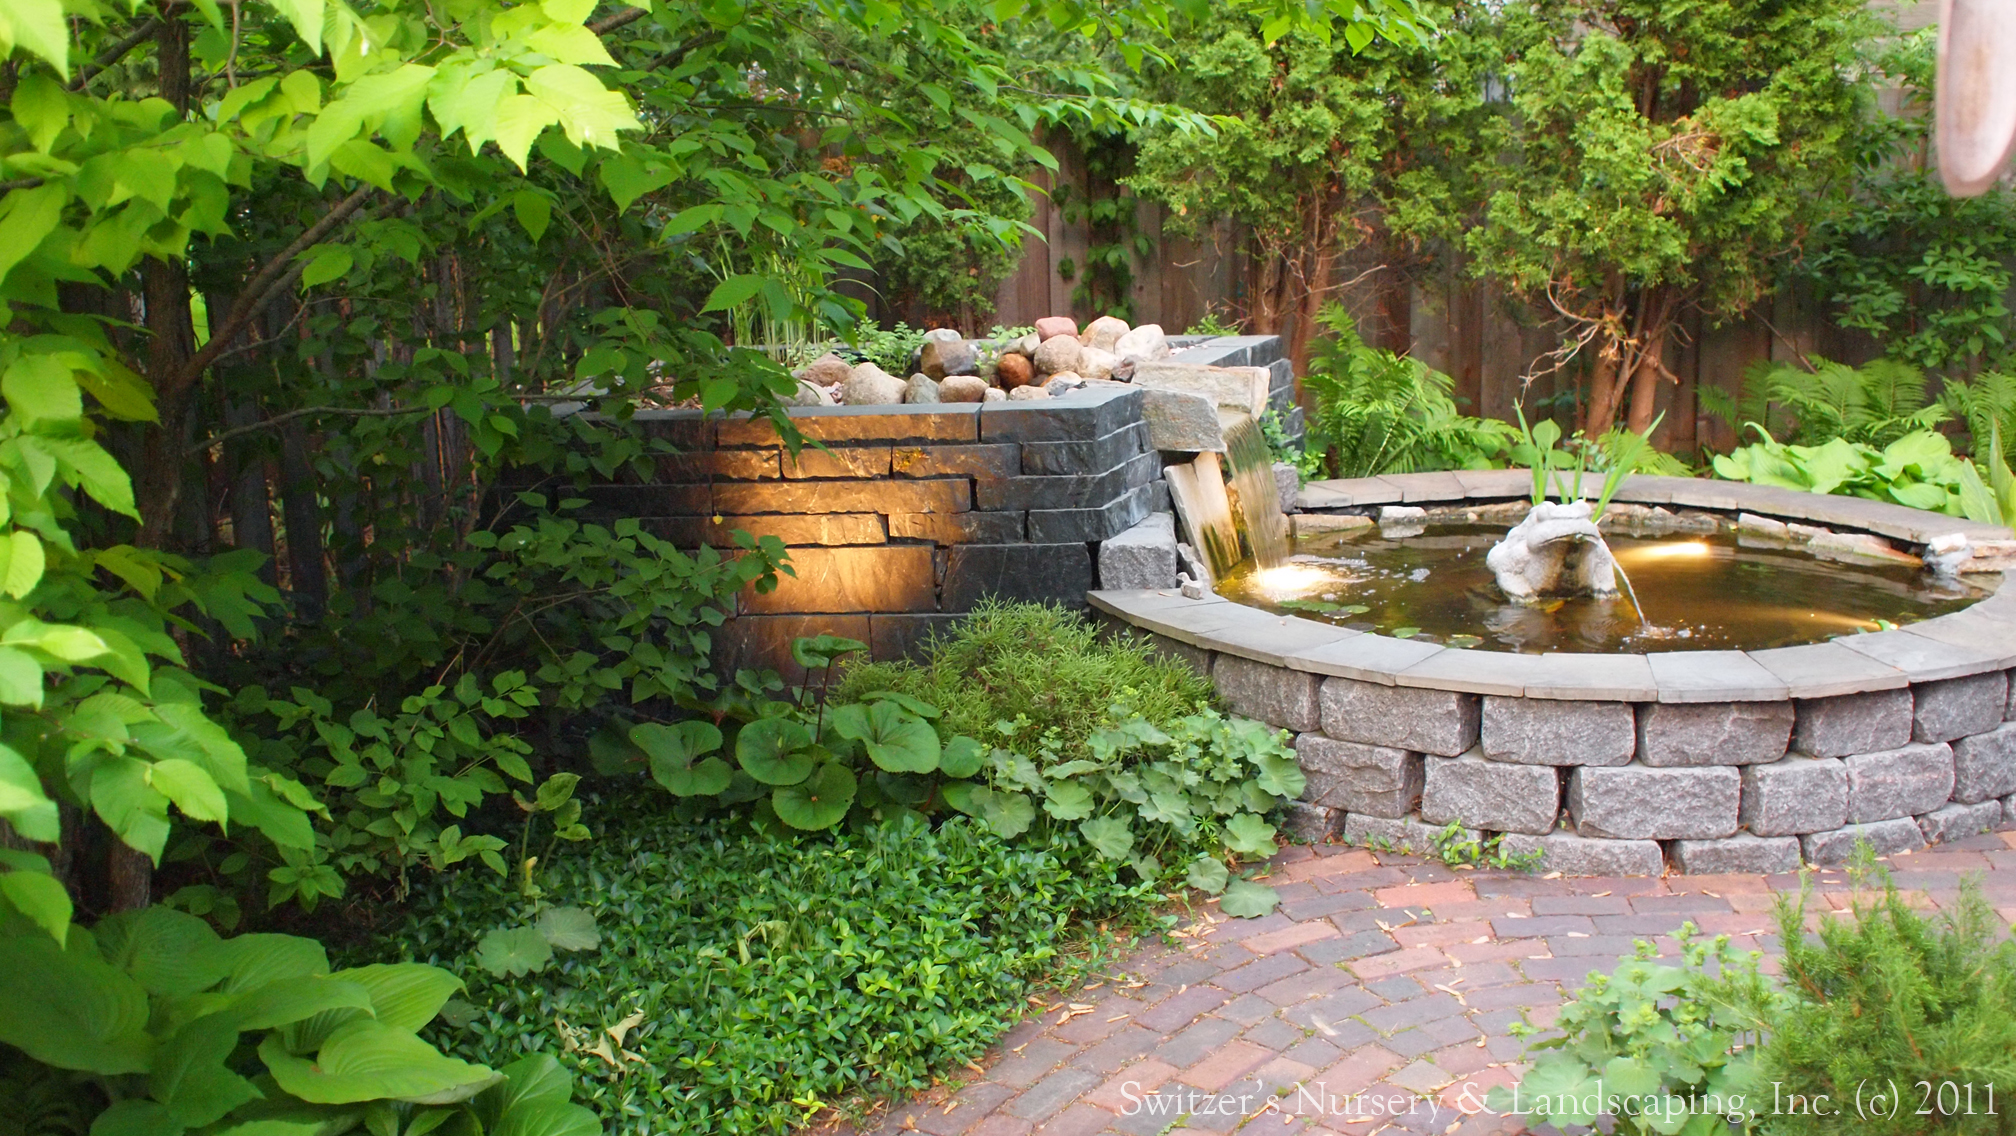 Minnesota landscape design inspired by bali natural for Raised pond design